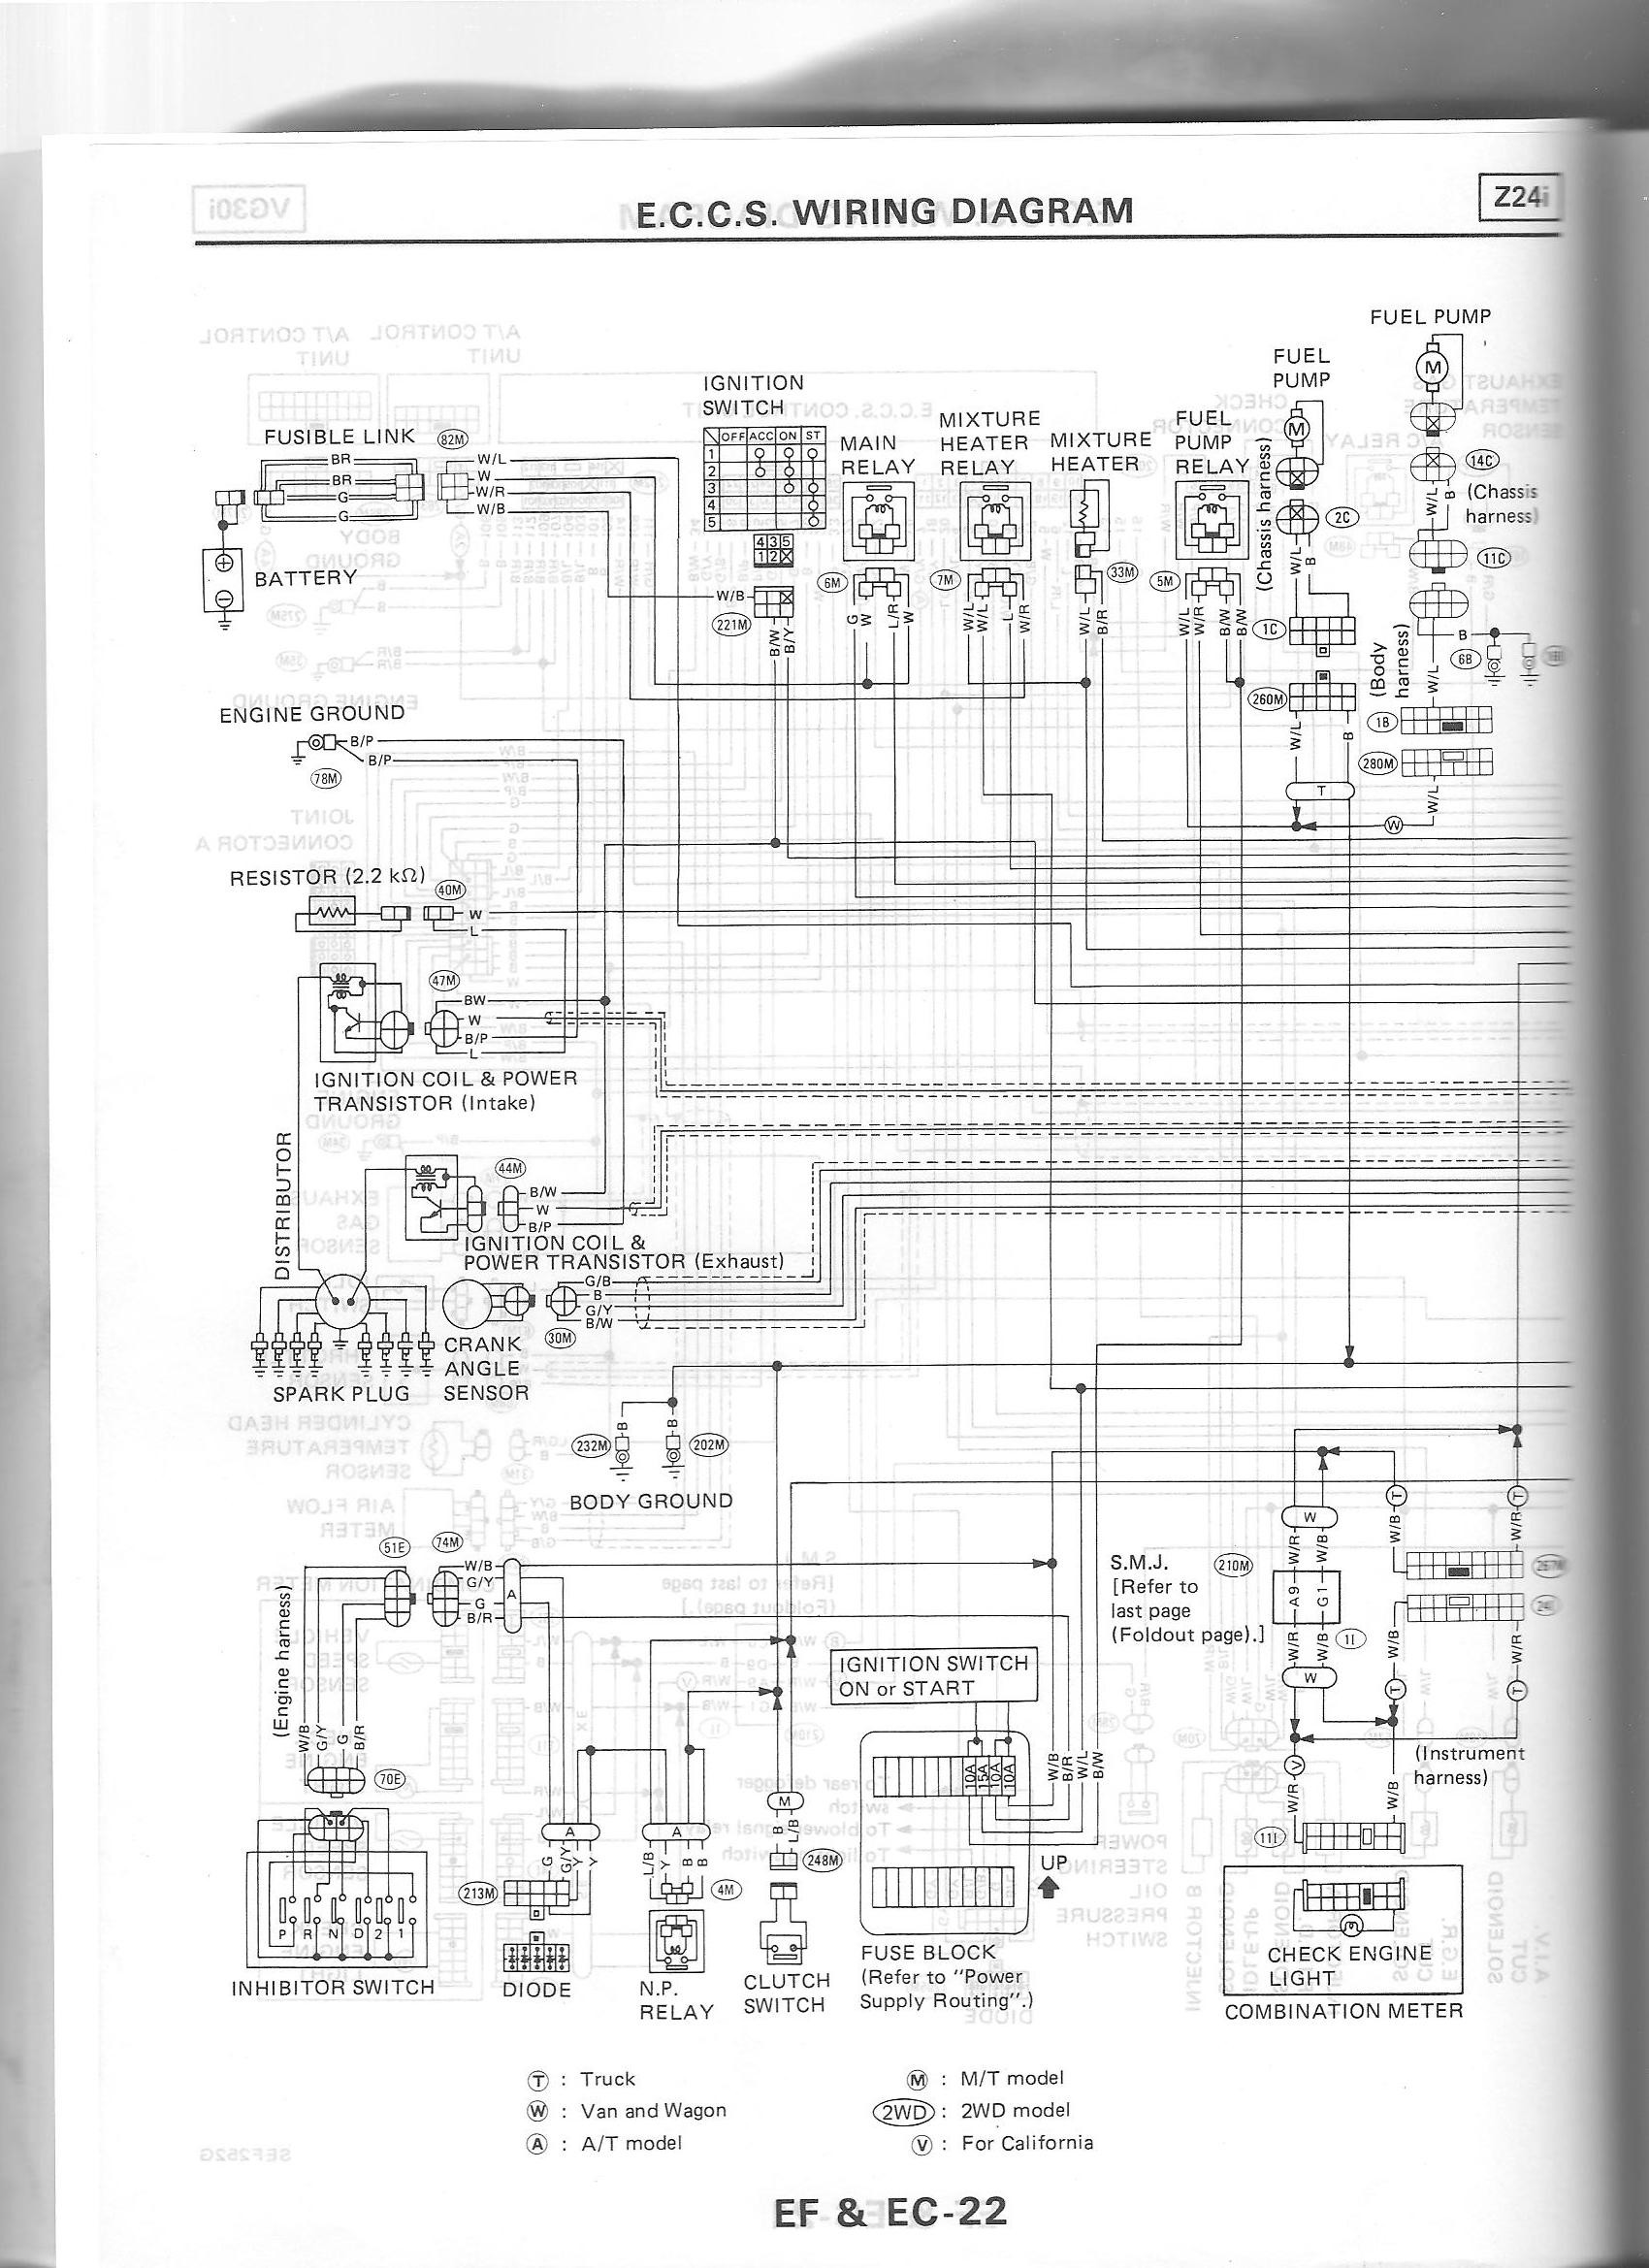 hight resolution of 88 nissan sentra ignition wiring diagram wiring diagram page 88 nissan sentra ignition wiring diagram